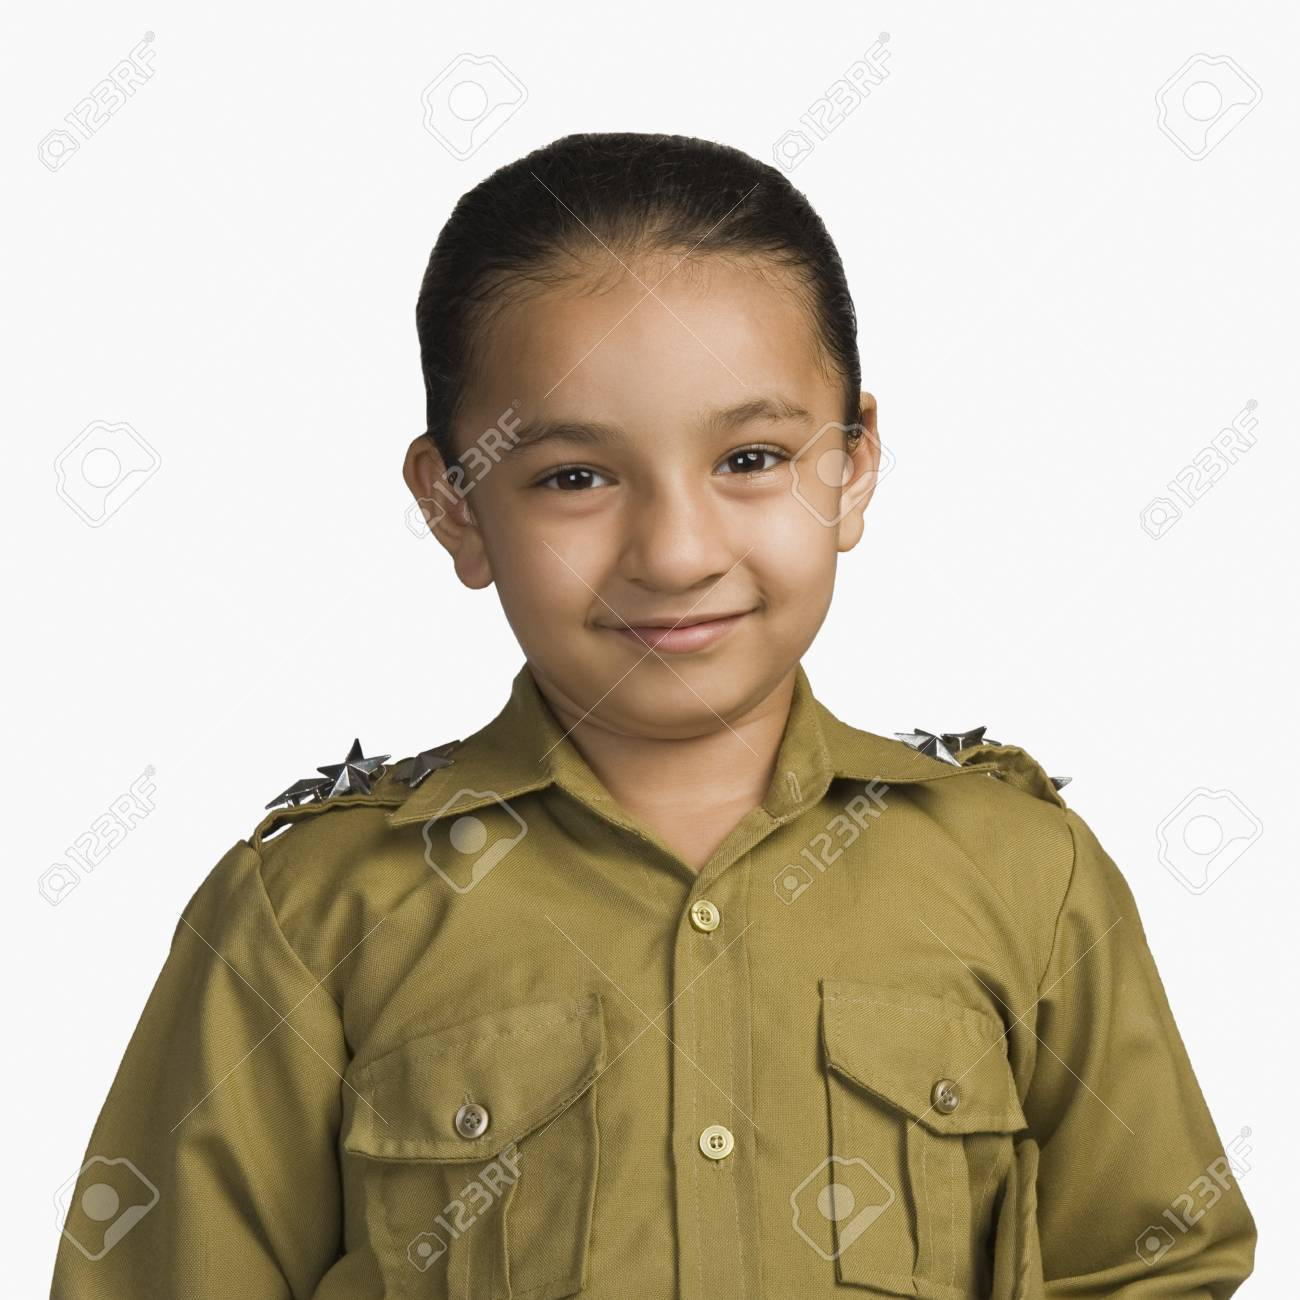 Girl dressed as a police officer and smiling Stock Photo - 10169247